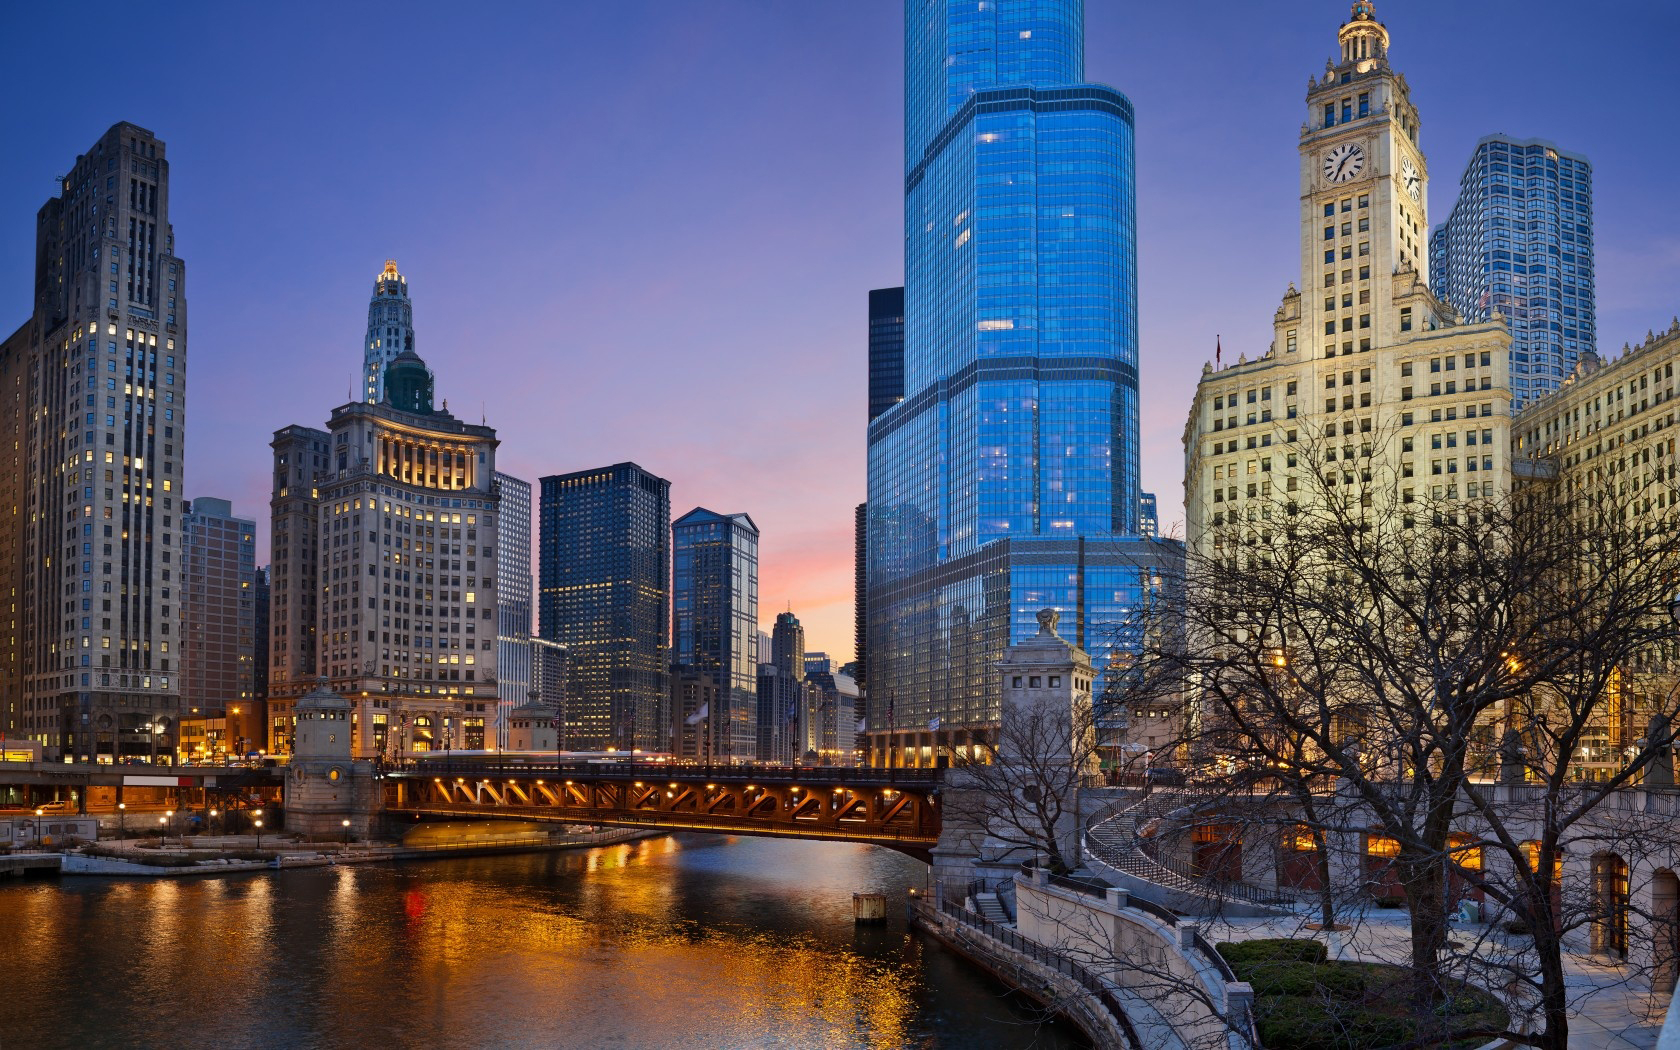 214 chicago hd wallpapers backgrounds wallpaper abyss page 4 - Chicago skyline wallpaper 1920x1080 ...